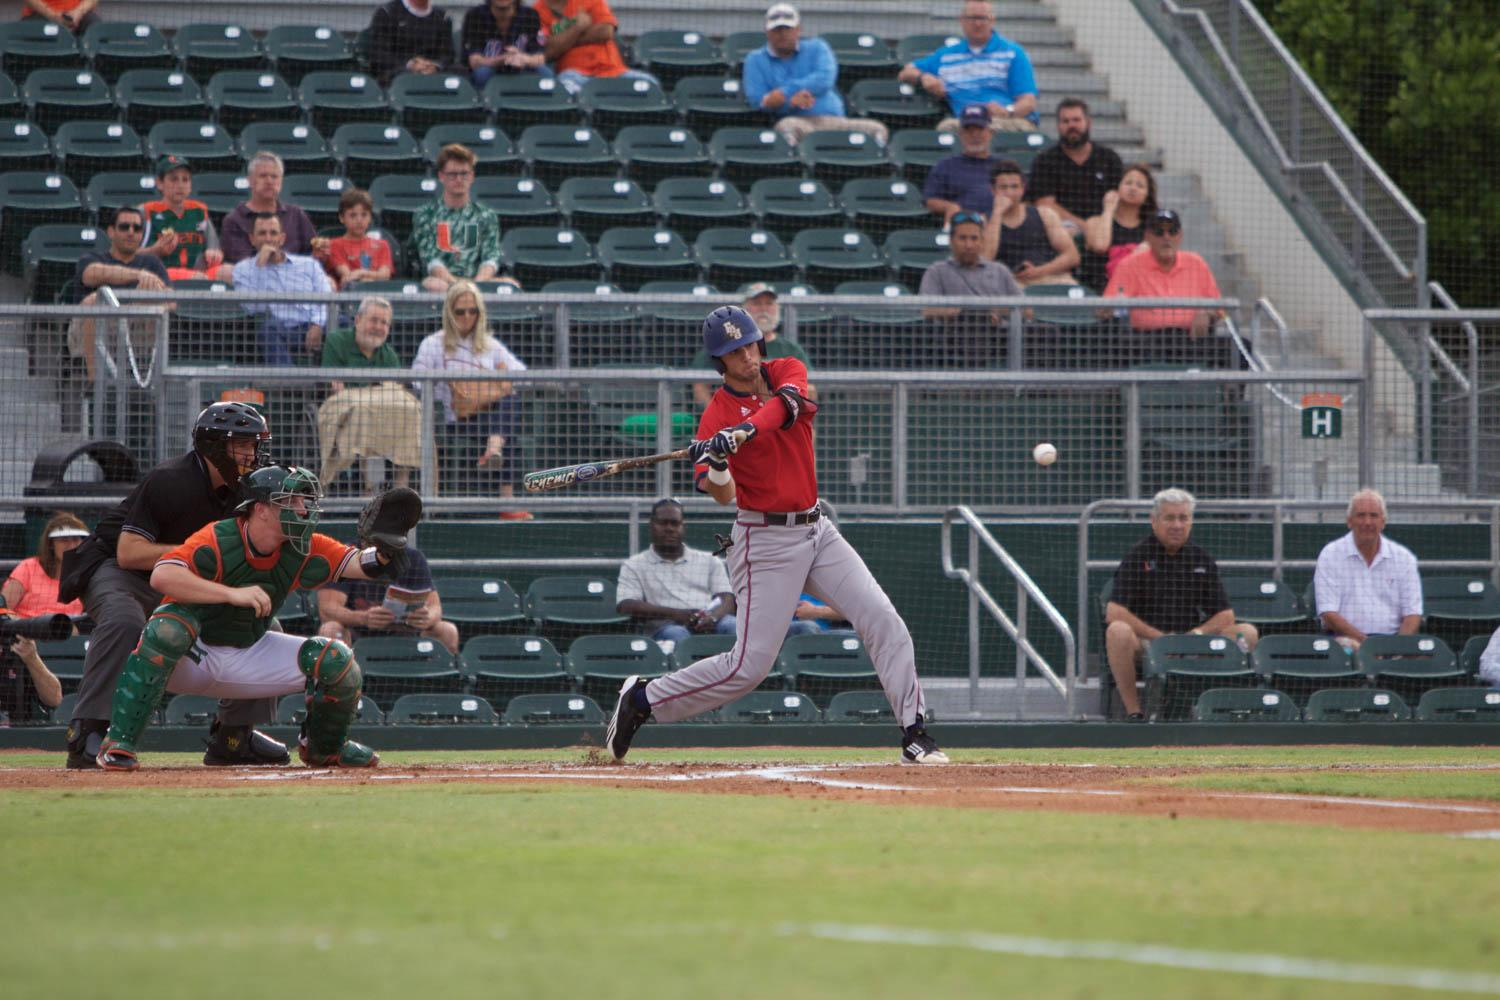 Junior shortstop CJ Chatham takes a swing during the Owls' game versus the No. 1 ranked Miami Hurricanes last Wednesday. Brendan Feeney | Sports Editor